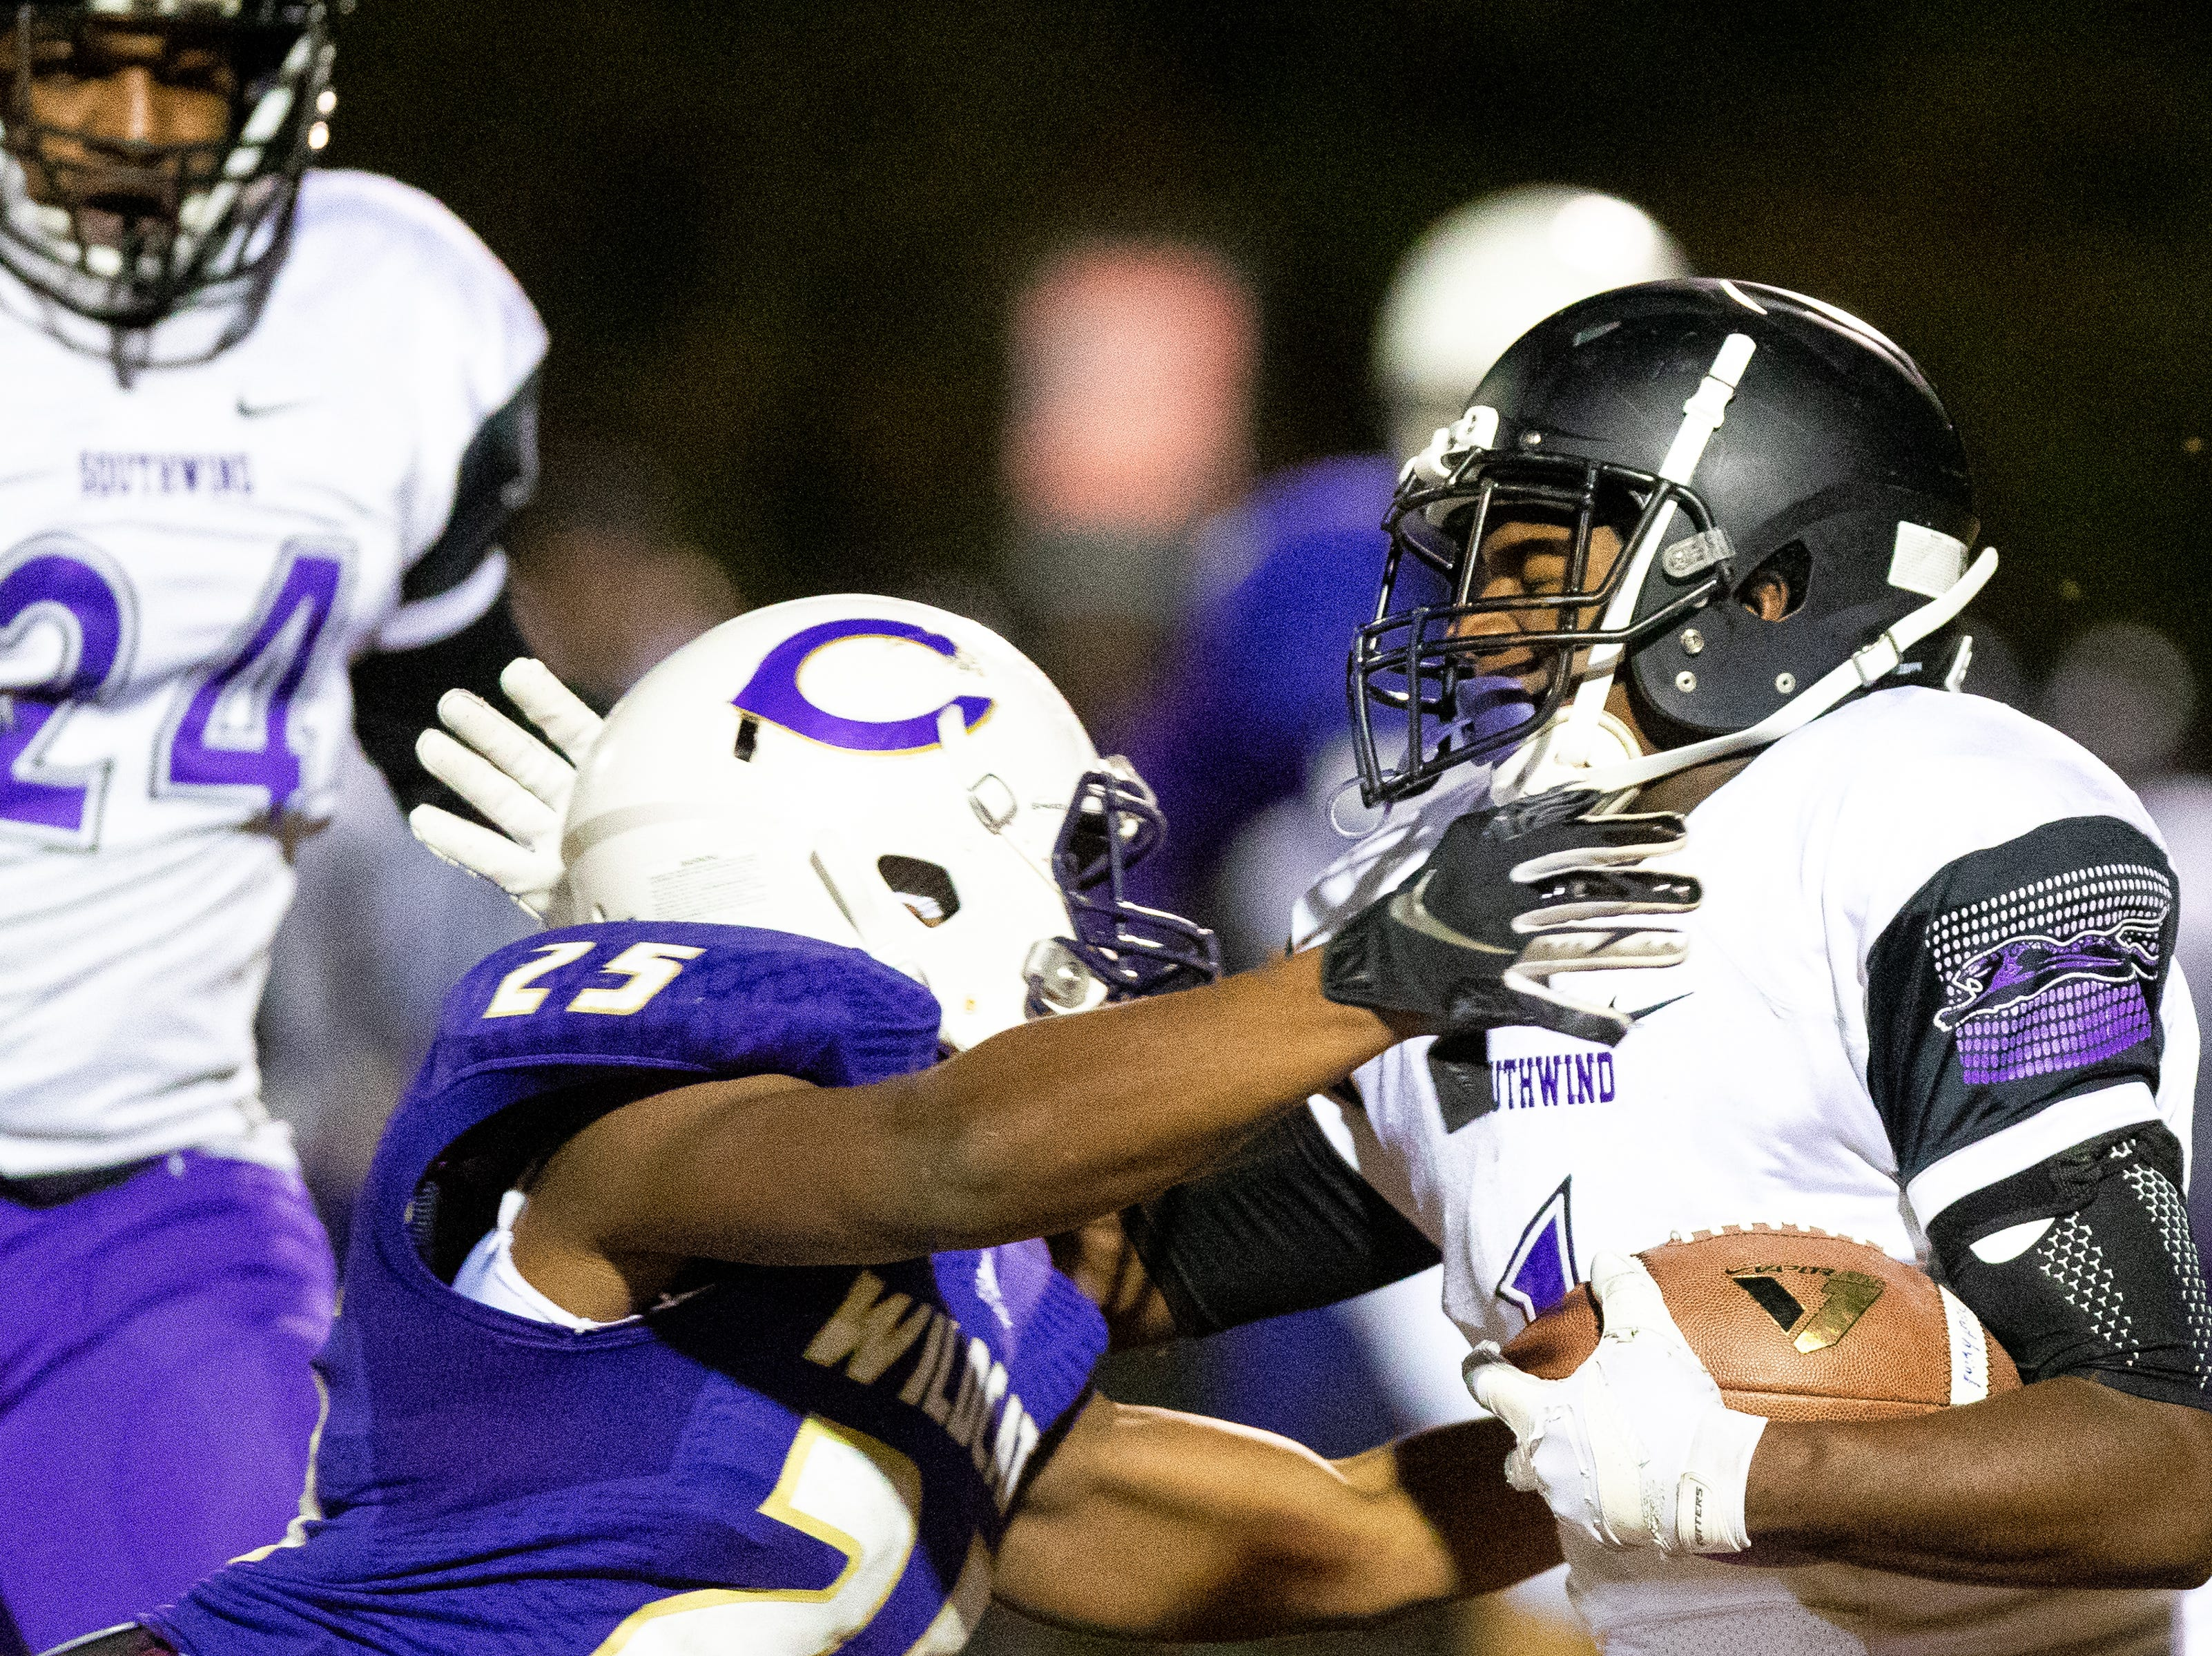 Steve Guy (1) of Southwind runs the ball during the first half at Clarksville High Friday, Nov. 2, 2018, in Clarksville, Tenn.